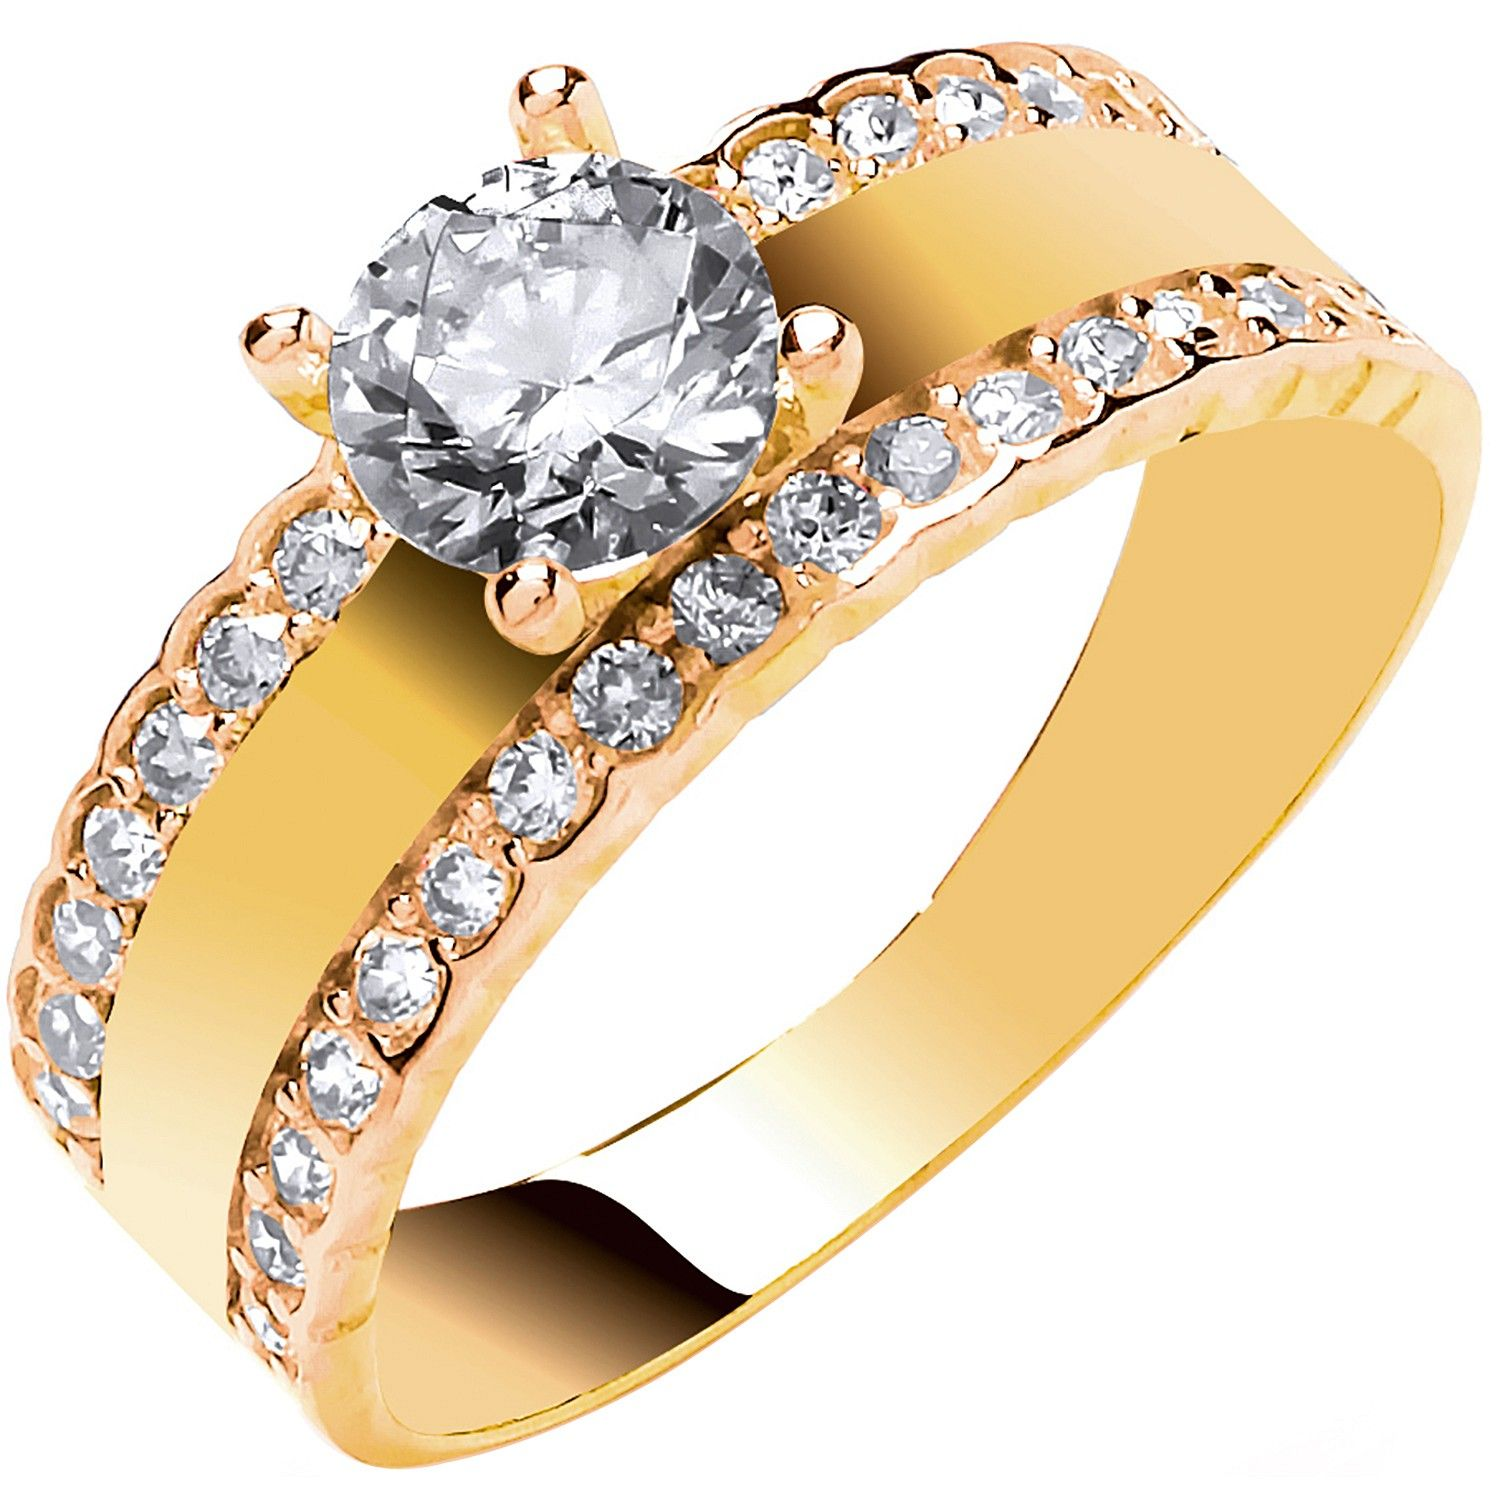 9ct Yellow Gold with Two Rows of CZ's Engagement Ring